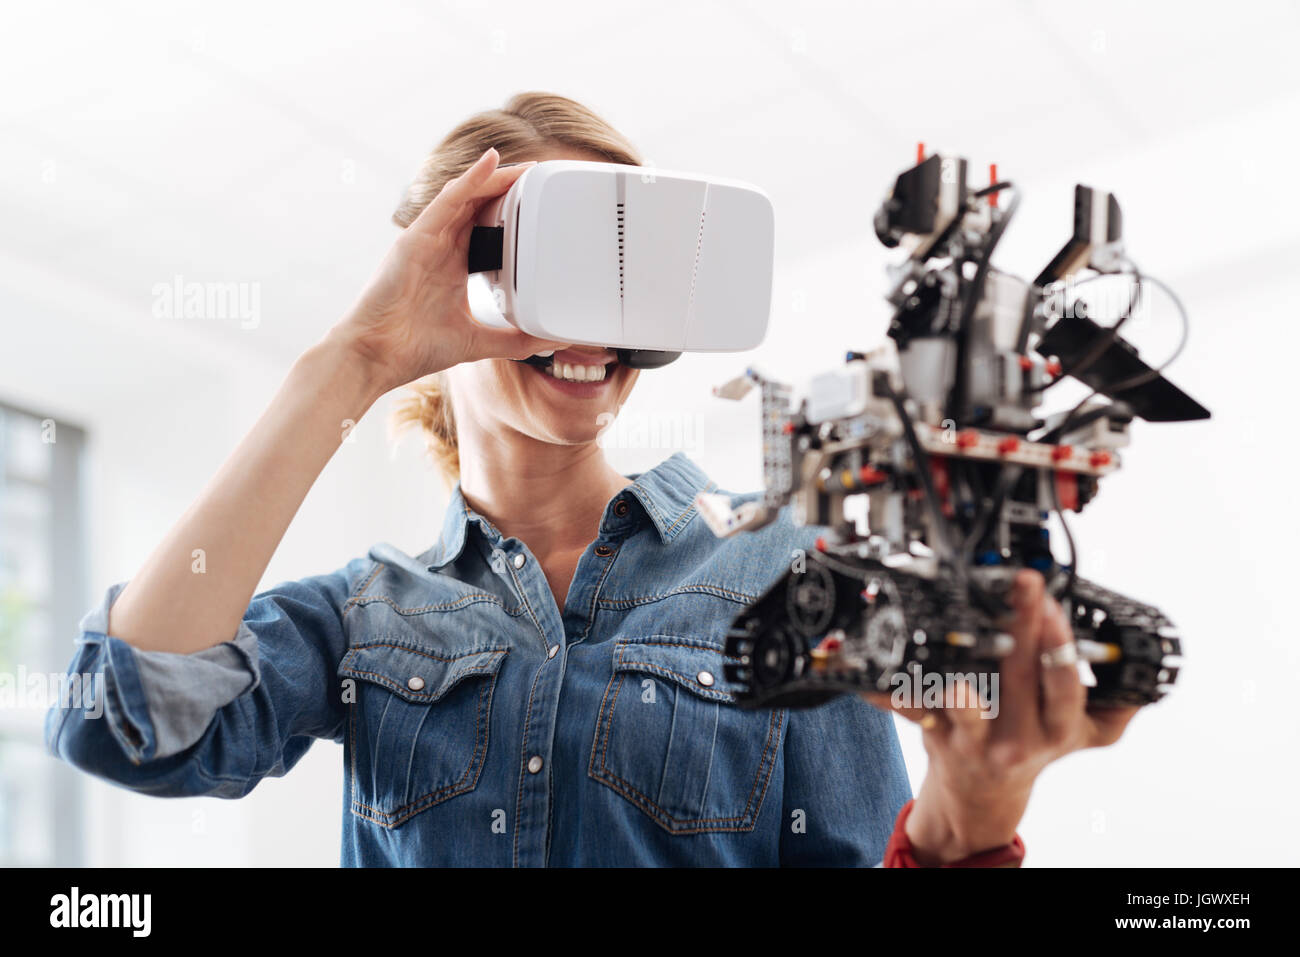 Enjoying new sensations. Smiling glad pleasant woman using visual reality headset while holding little smart robot - Stock Image